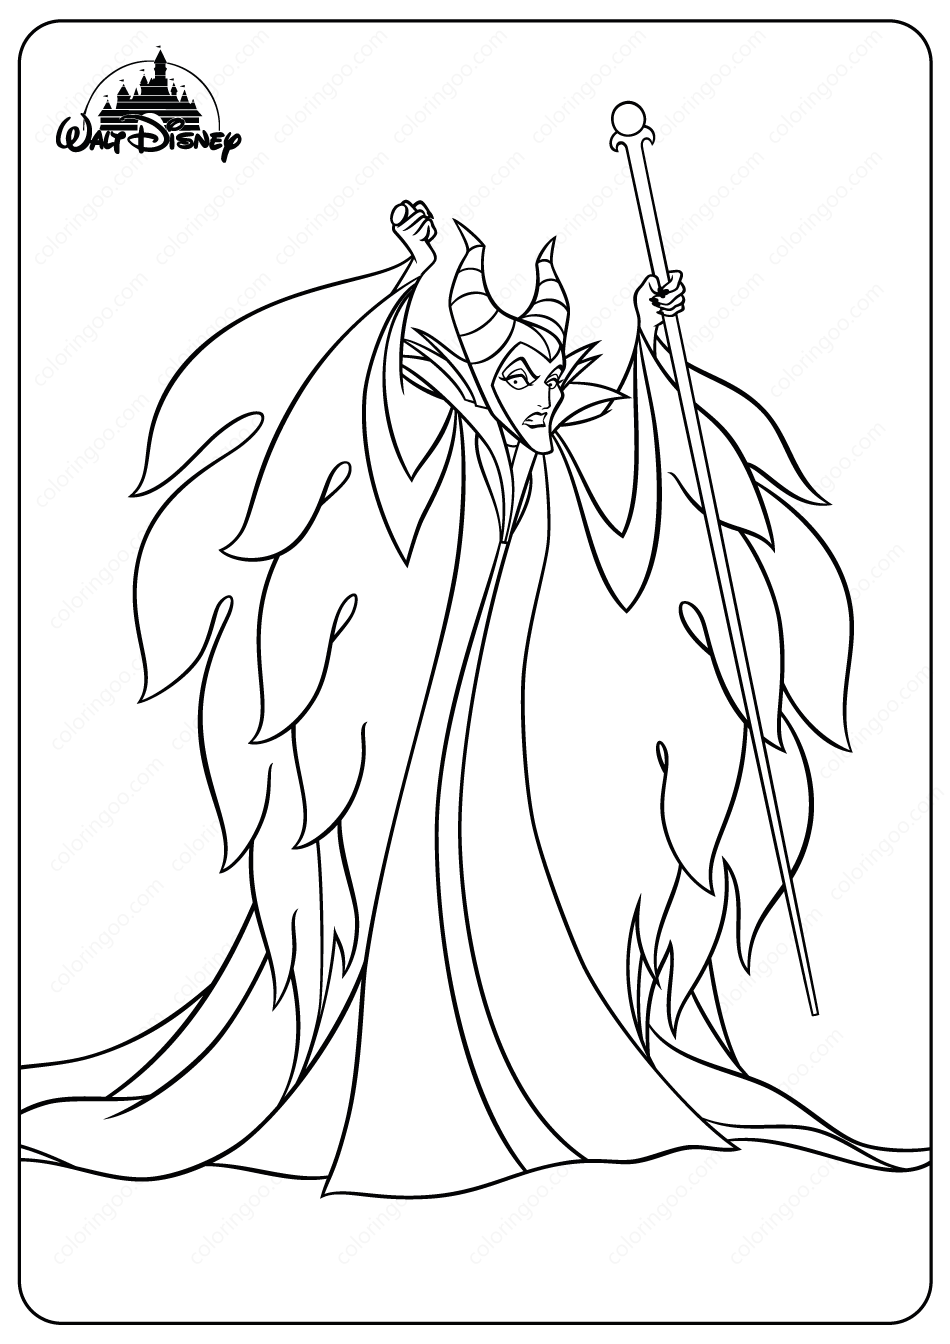 Printable Disney Evil Fairy Maleficent Coloring Pages